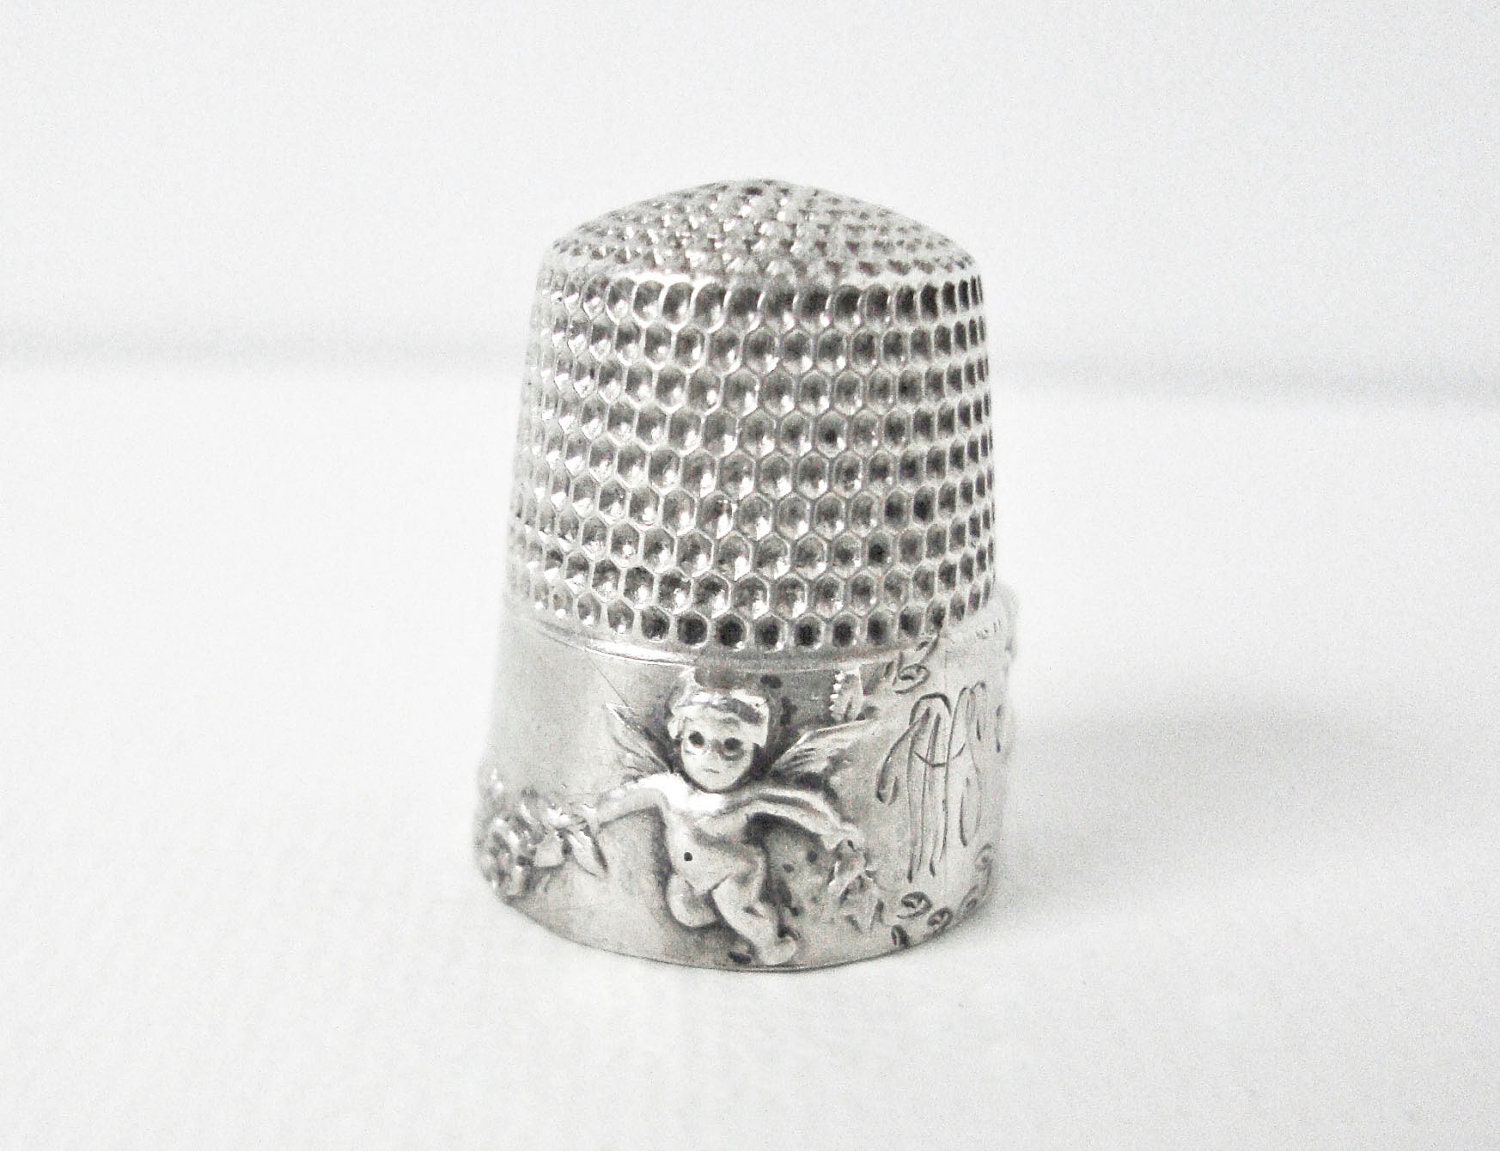 Antique Simon Bros Sterling Silver Thimble